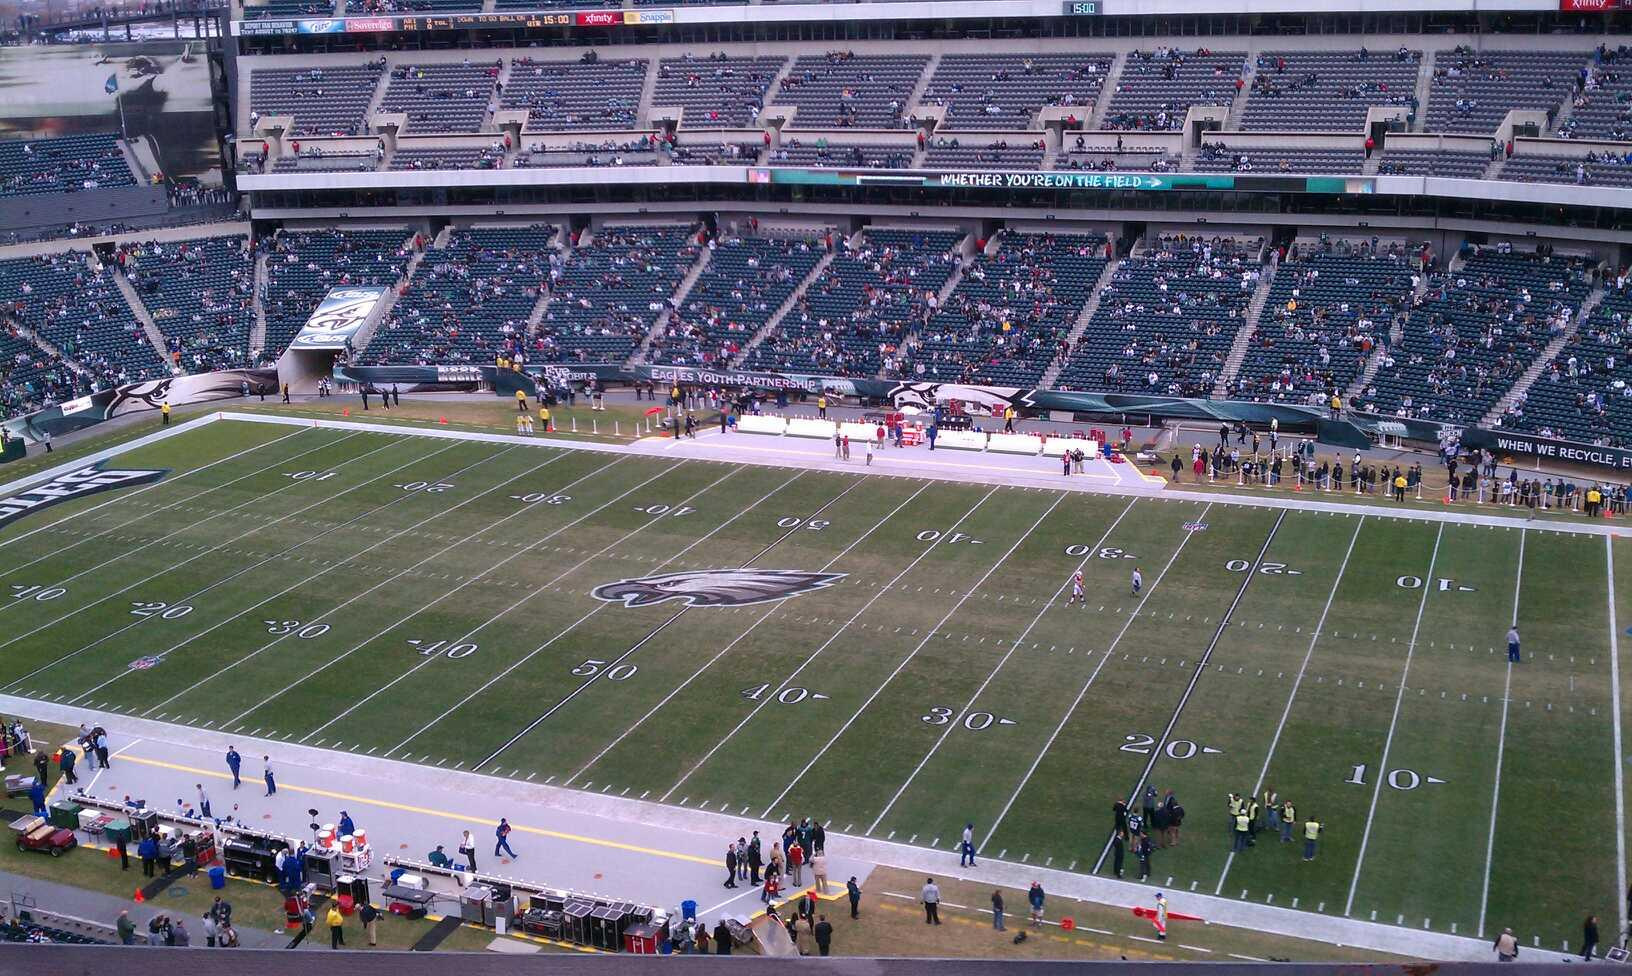 Lincoln Financial Field Section 205 Row 5 Seat 16